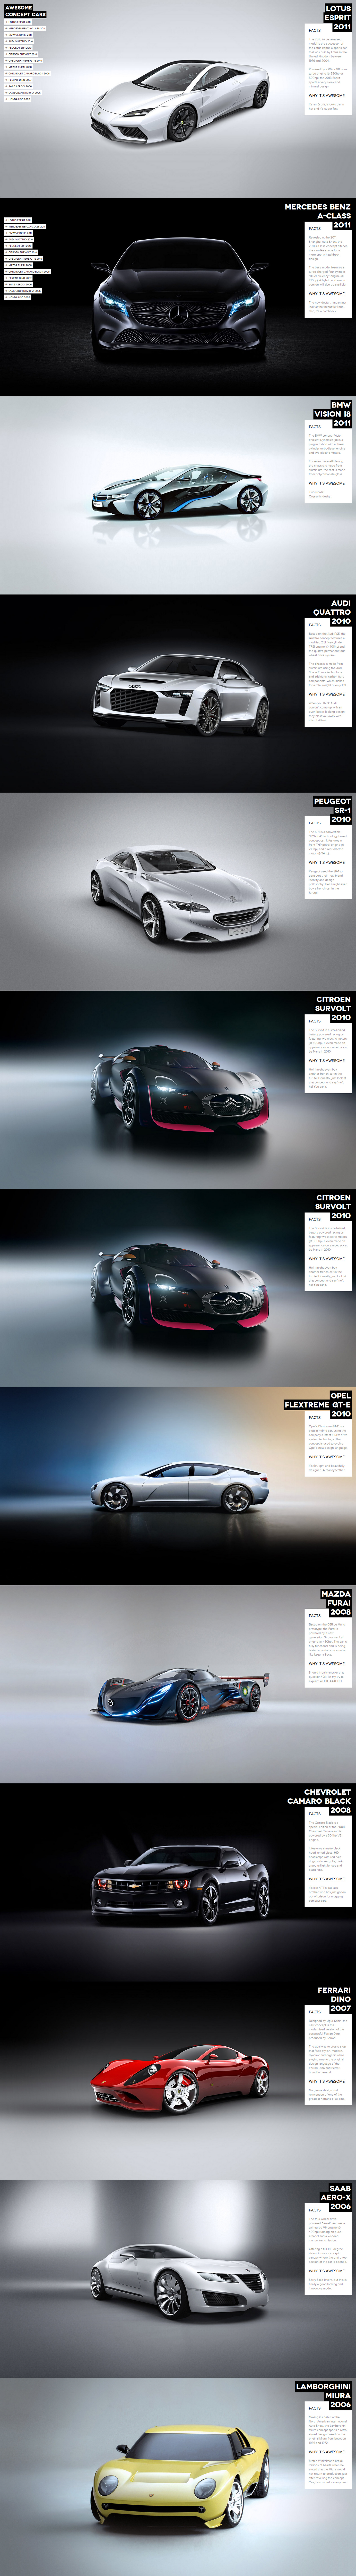 Awesome Concept Cars Website Screenshot